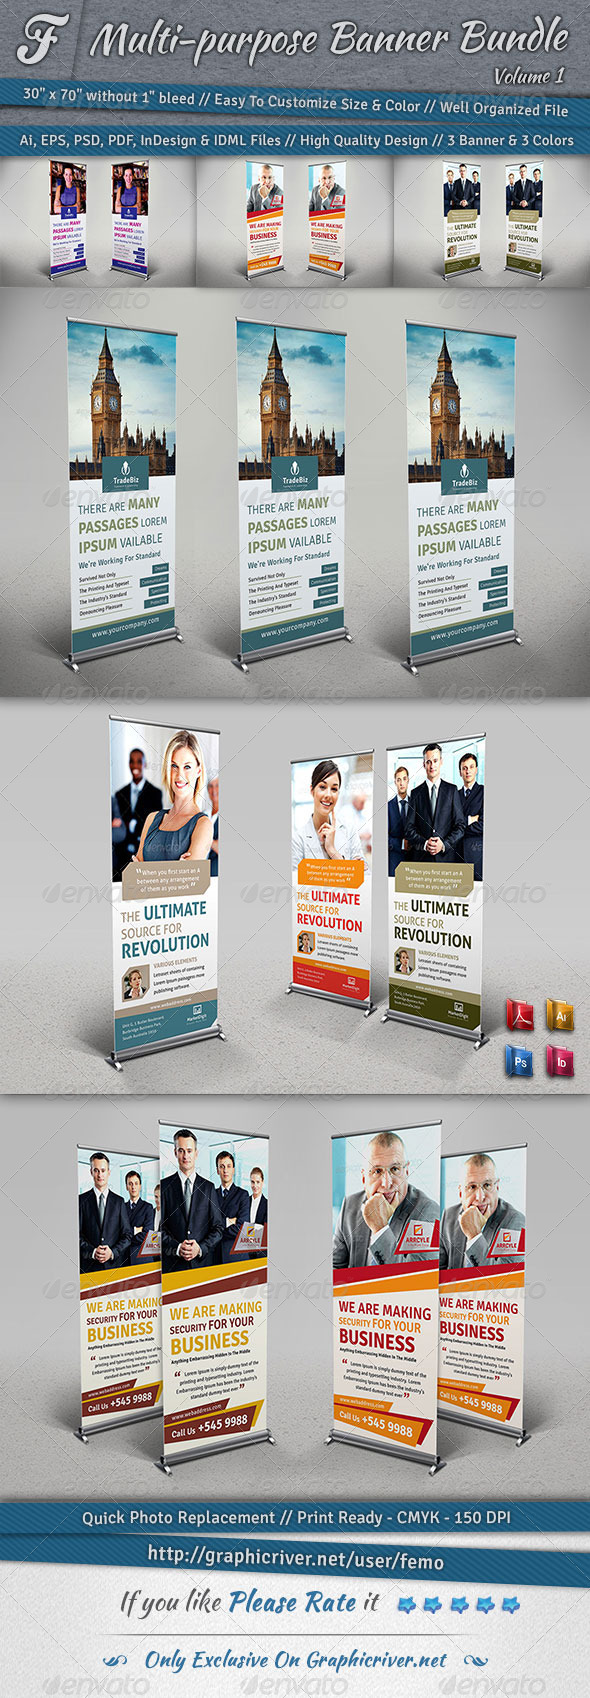 GraphicRiver Multi-purpose Banner Bundle Volume 1 7143888